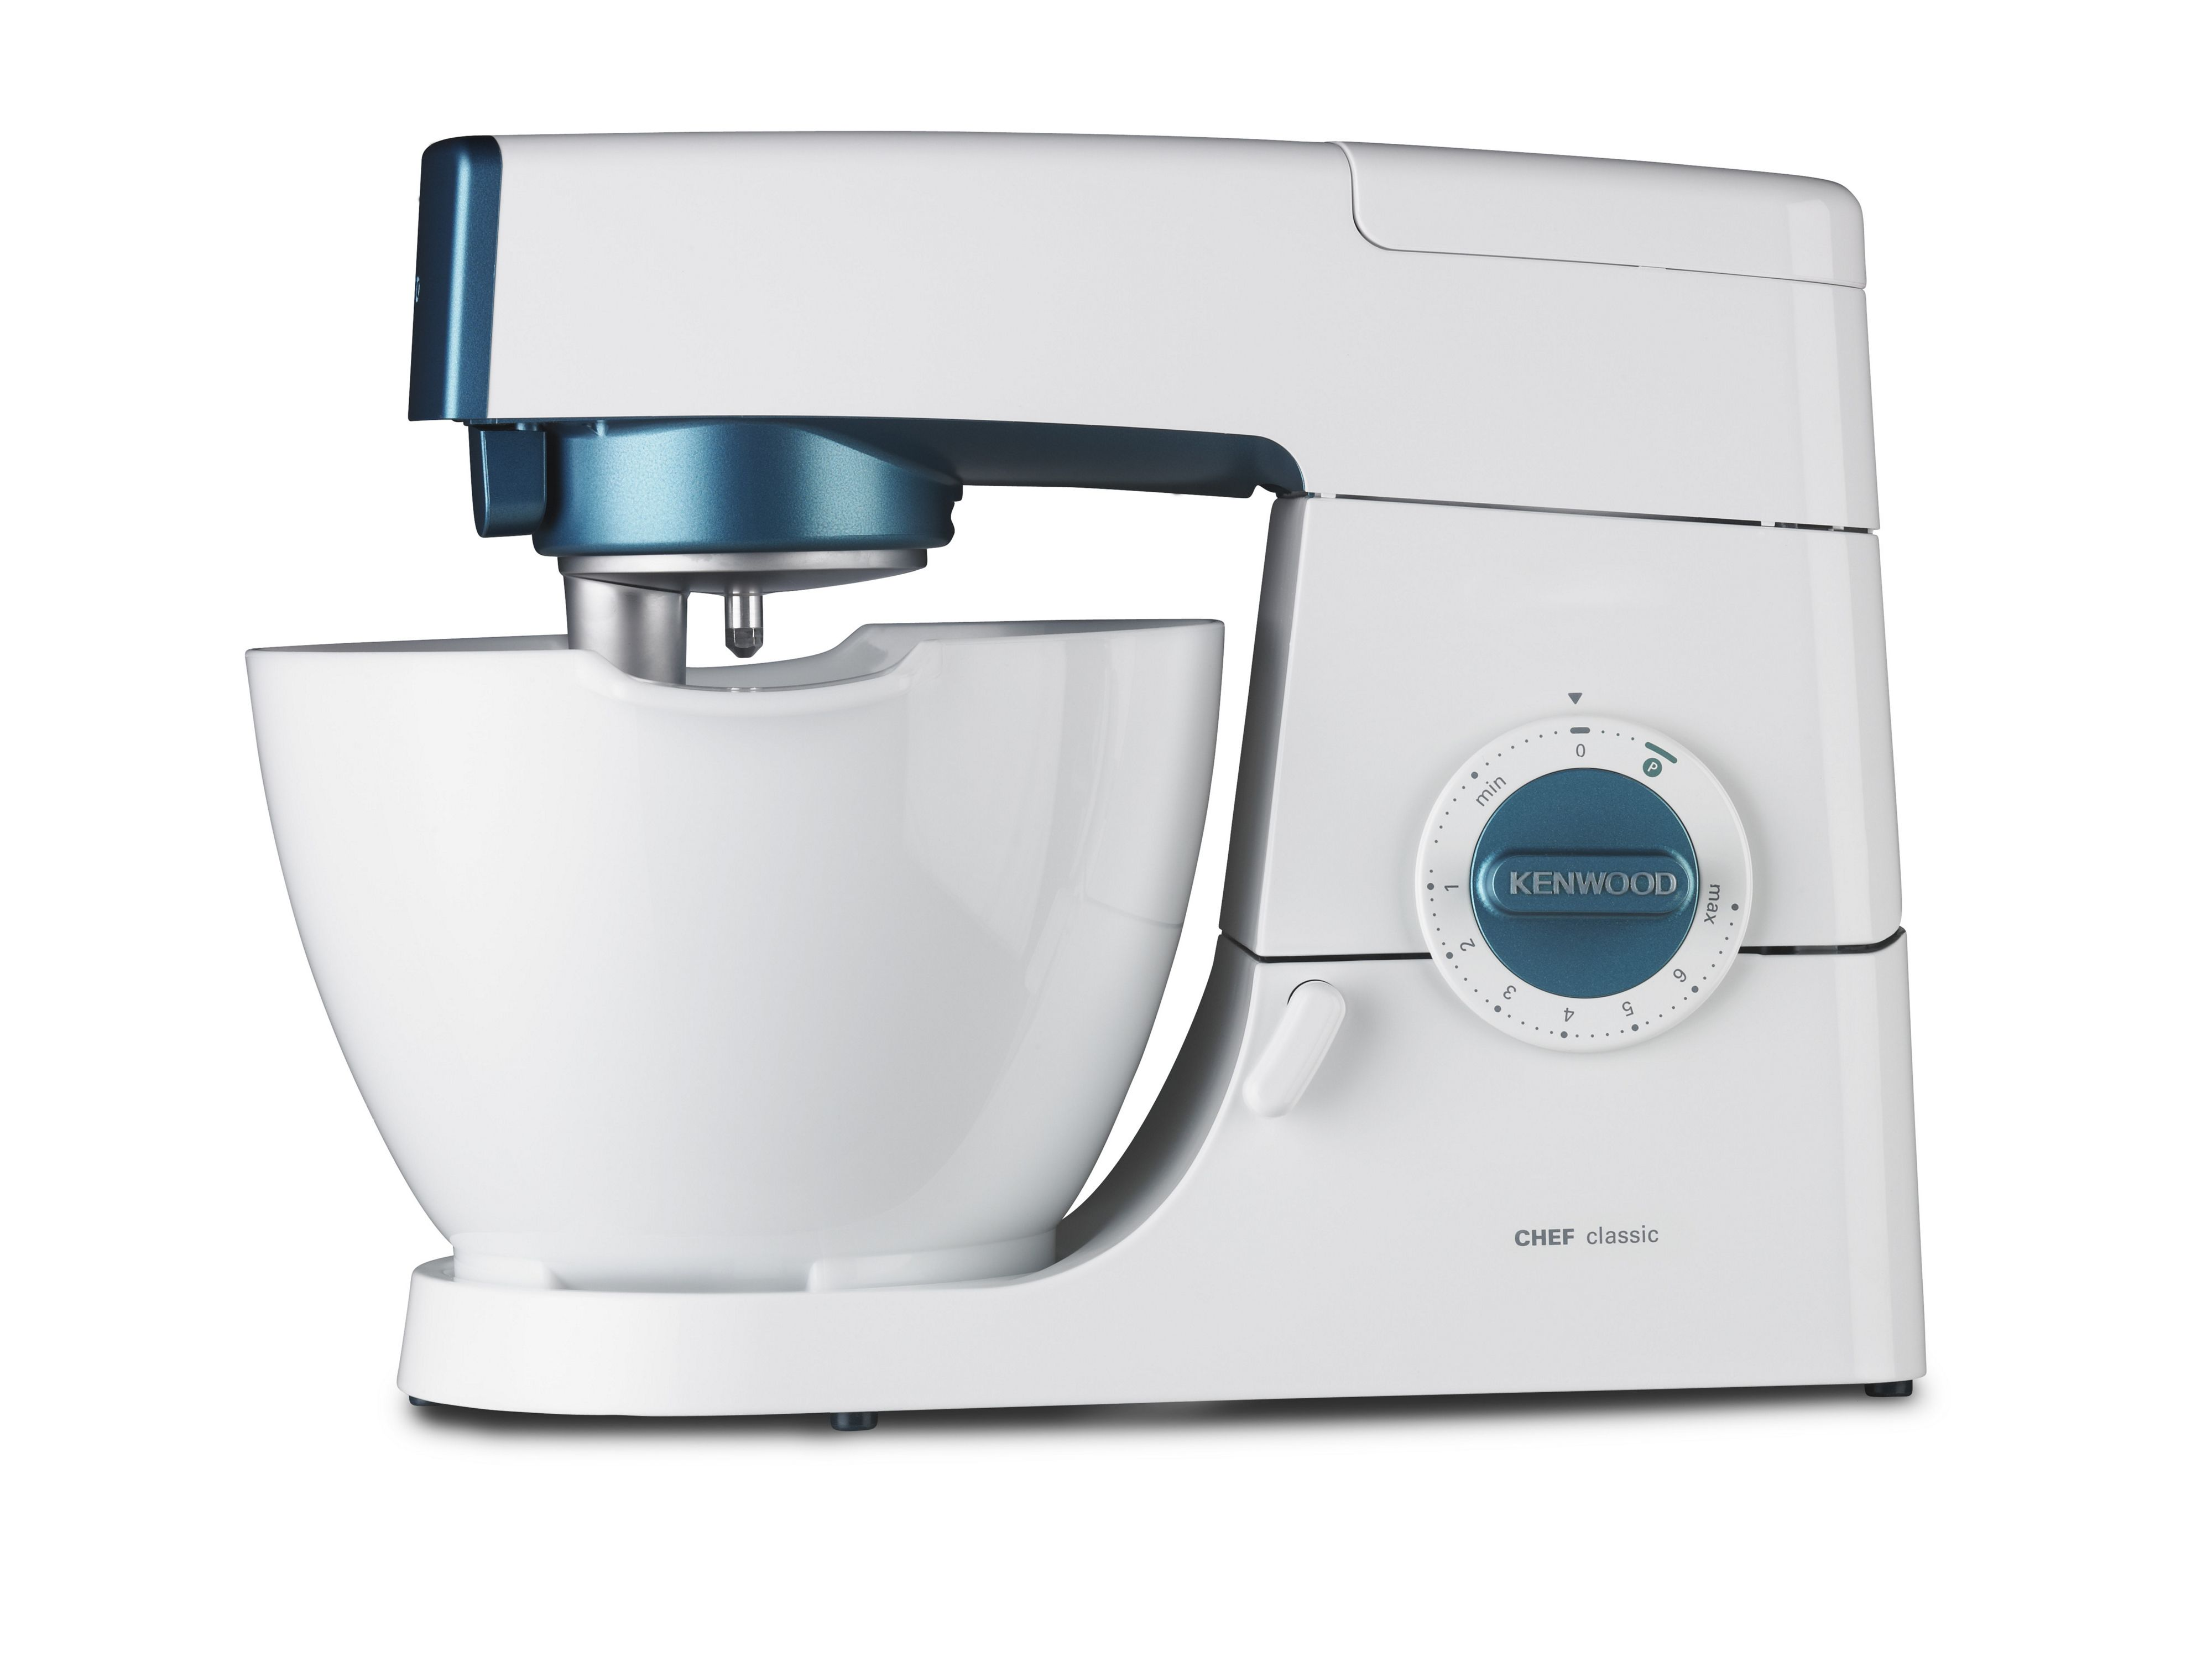 Kenwood Nostalgia Kitchen Machine Astro Blue Chef